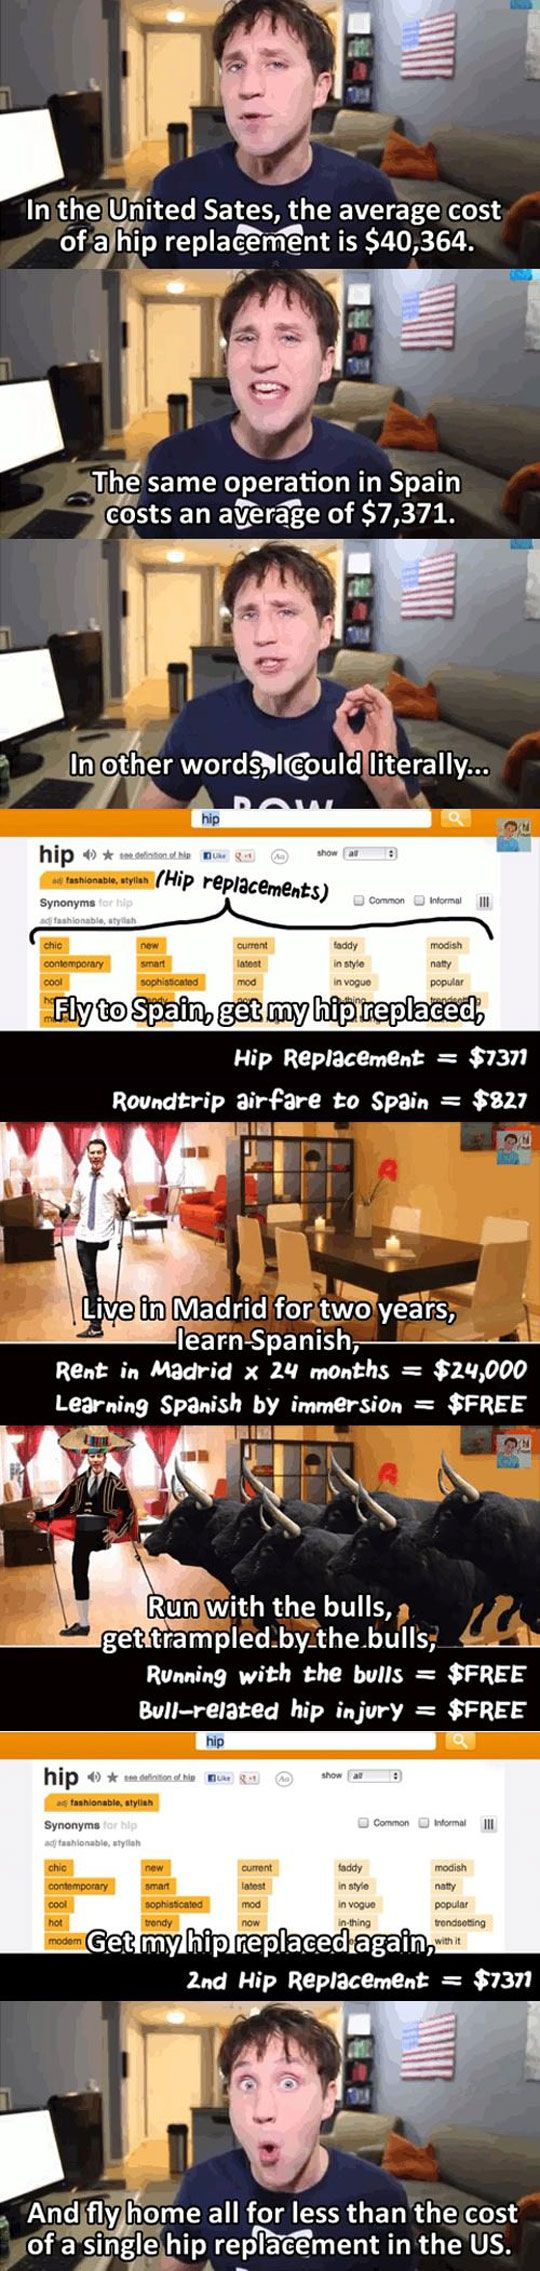 The Real Cost Of Healthcare In The US